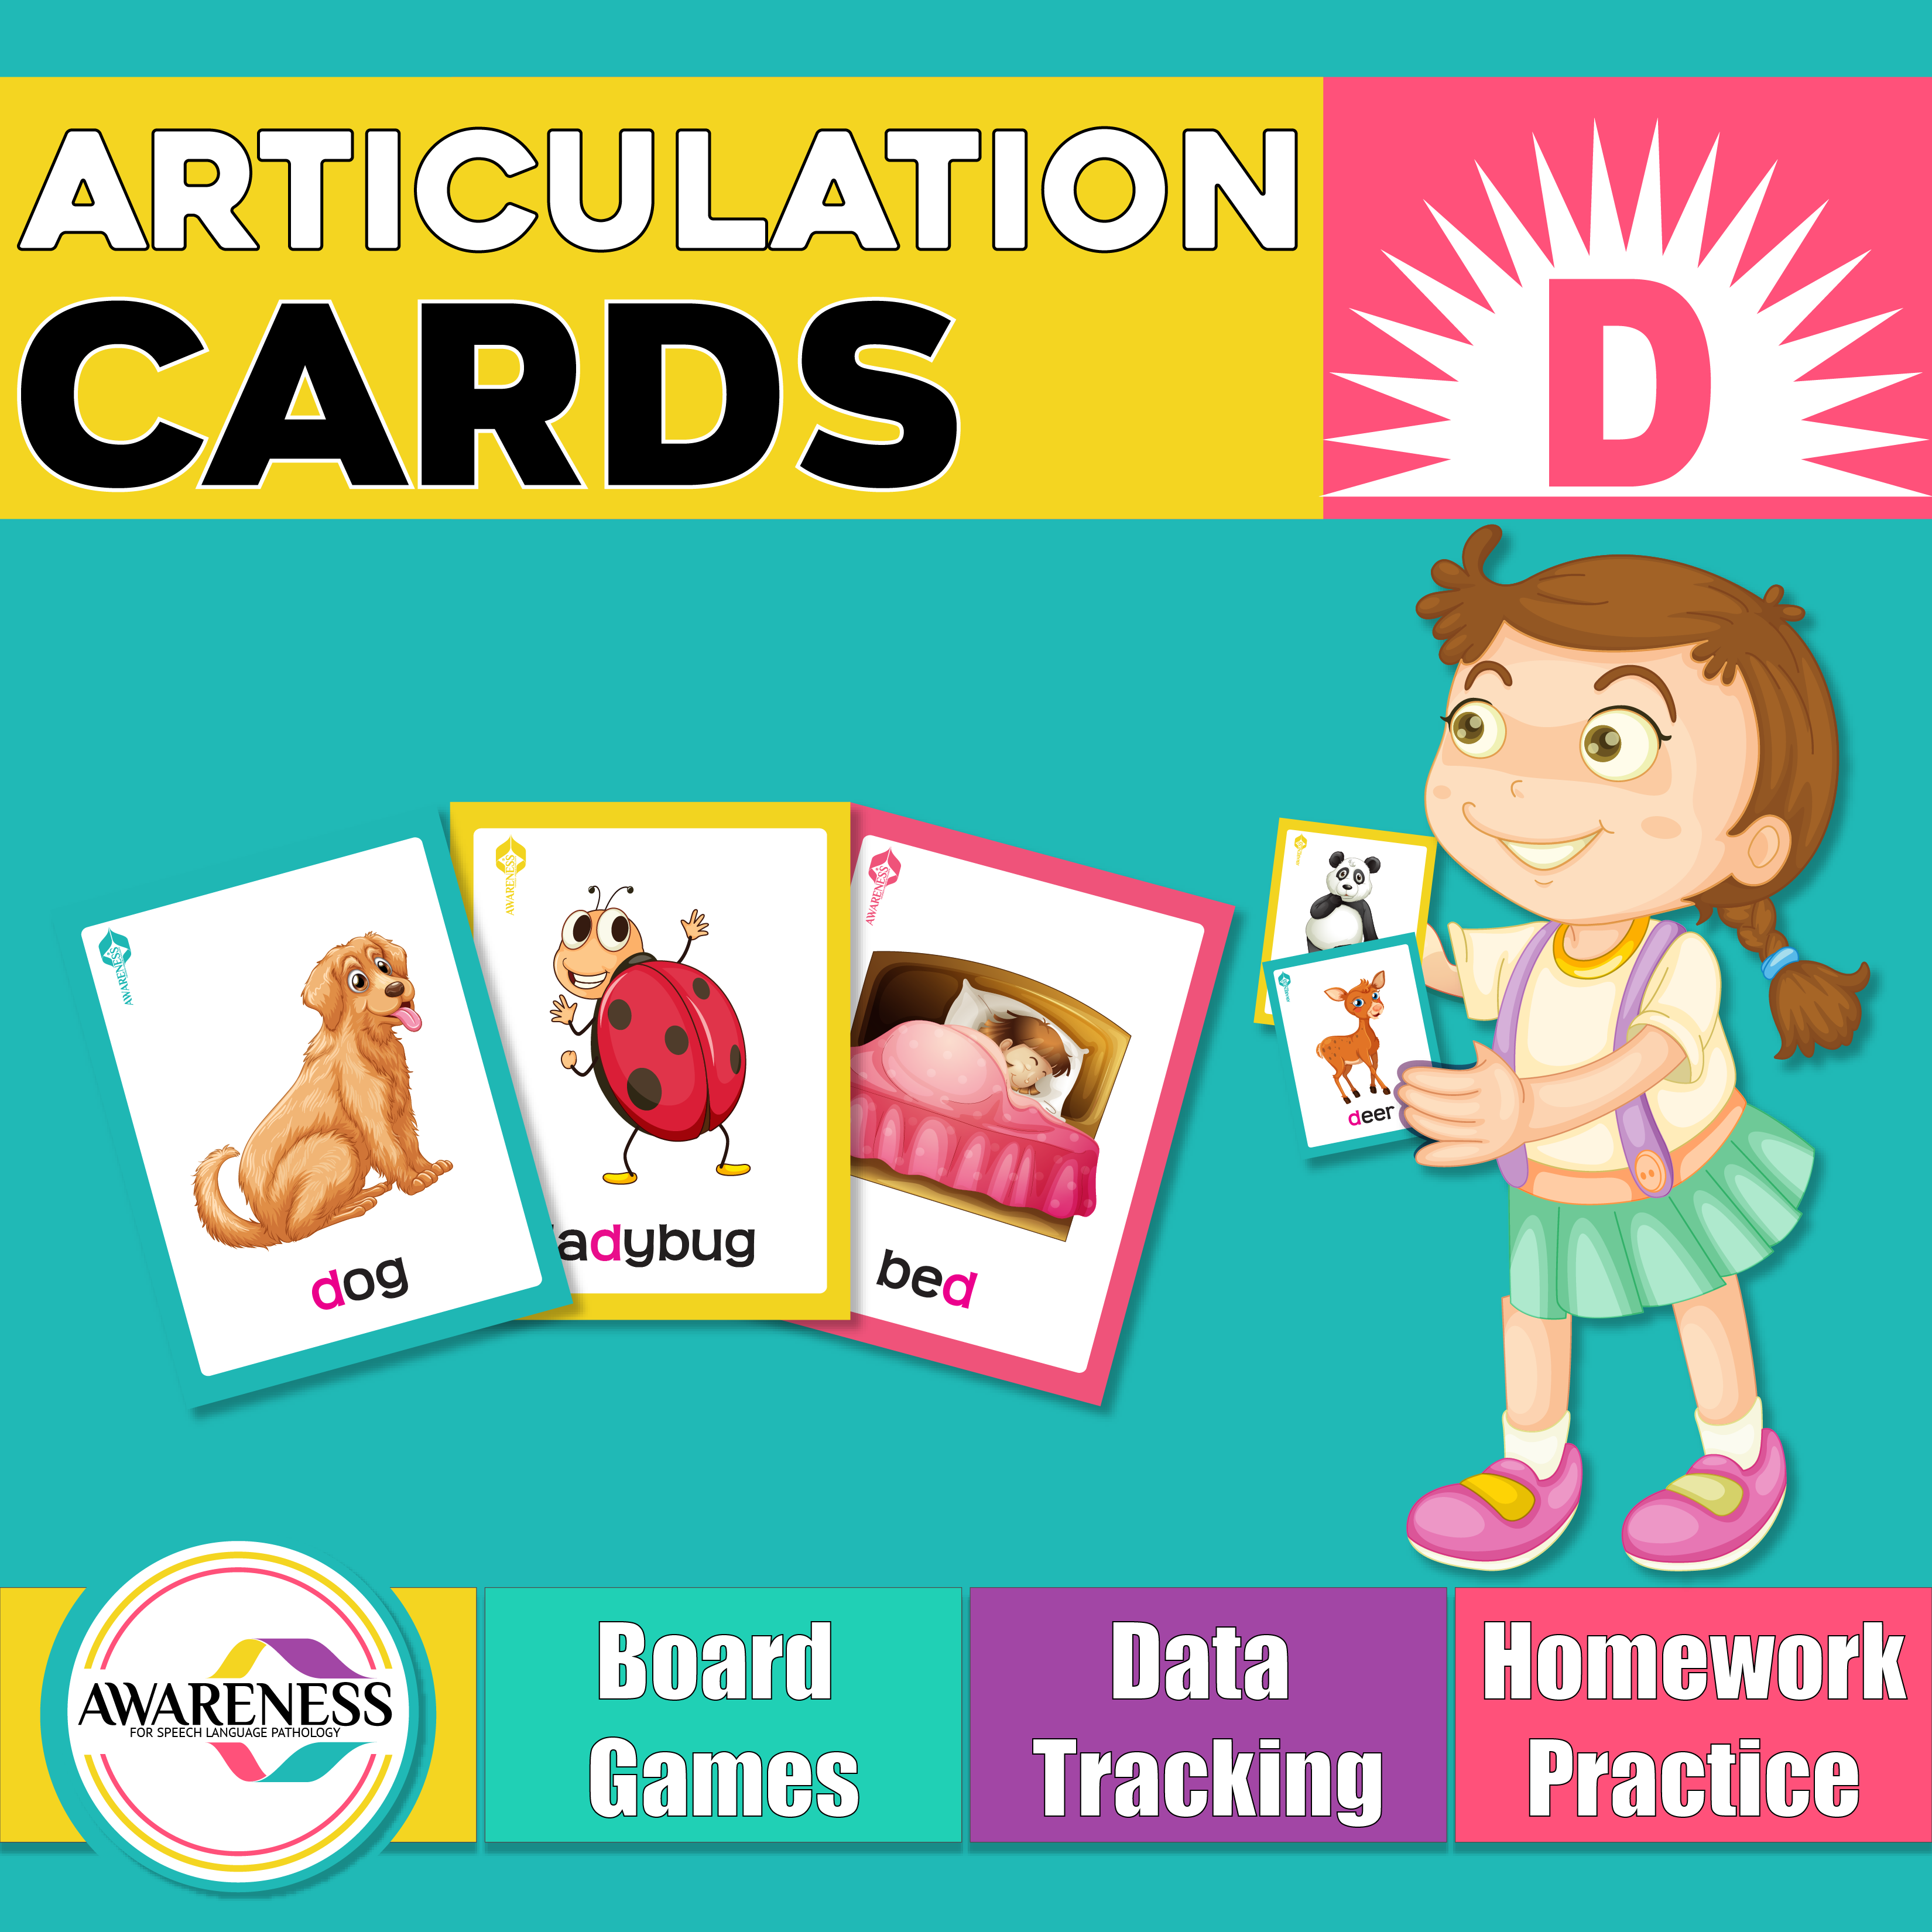 D Articulation Cards Worksheets And Activities For Speech